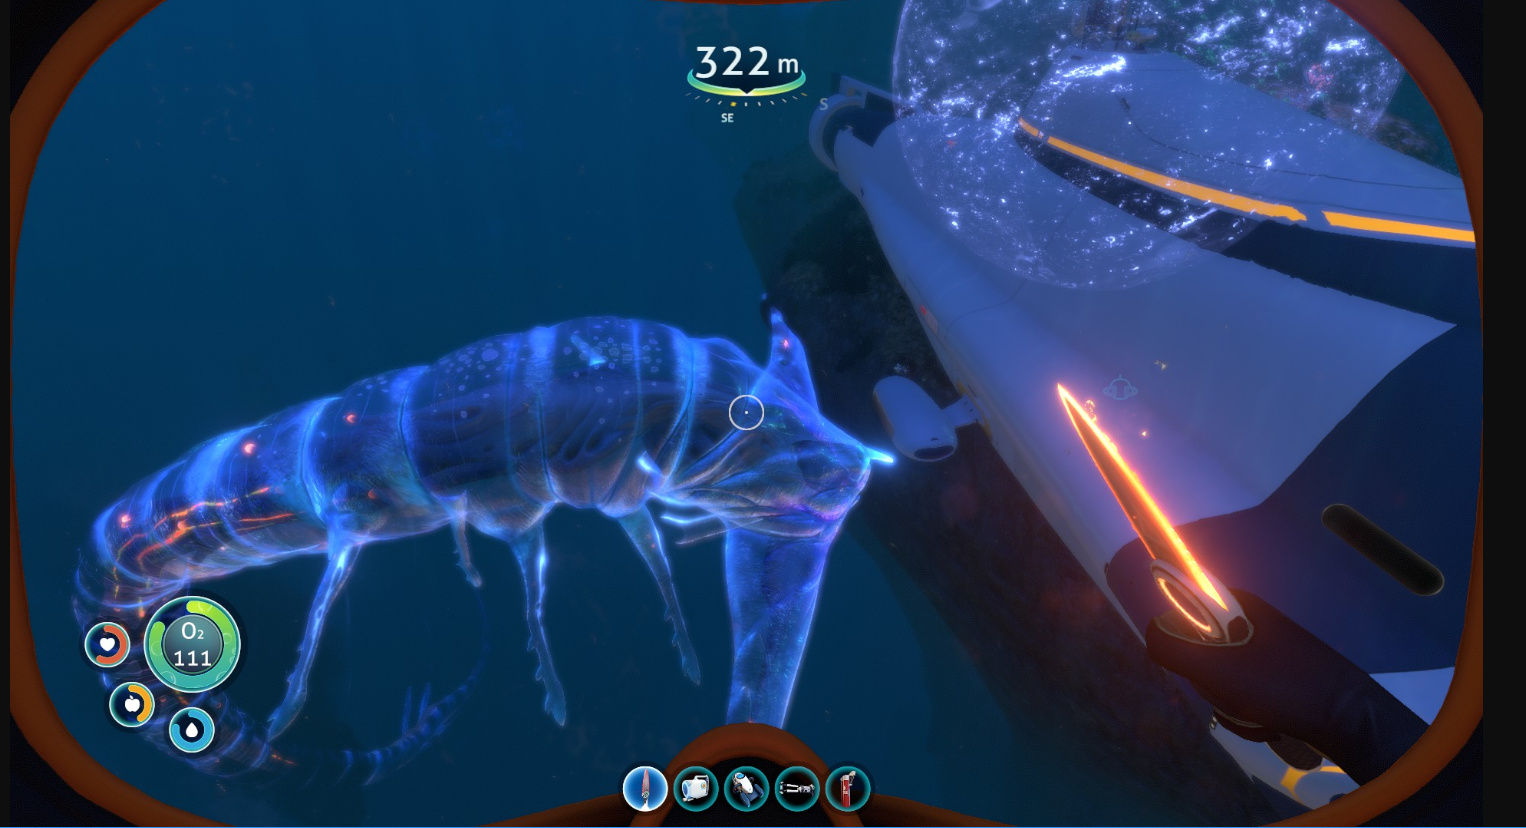 Subnautica - SCUBA, Unknown Worlds, drowning - Games